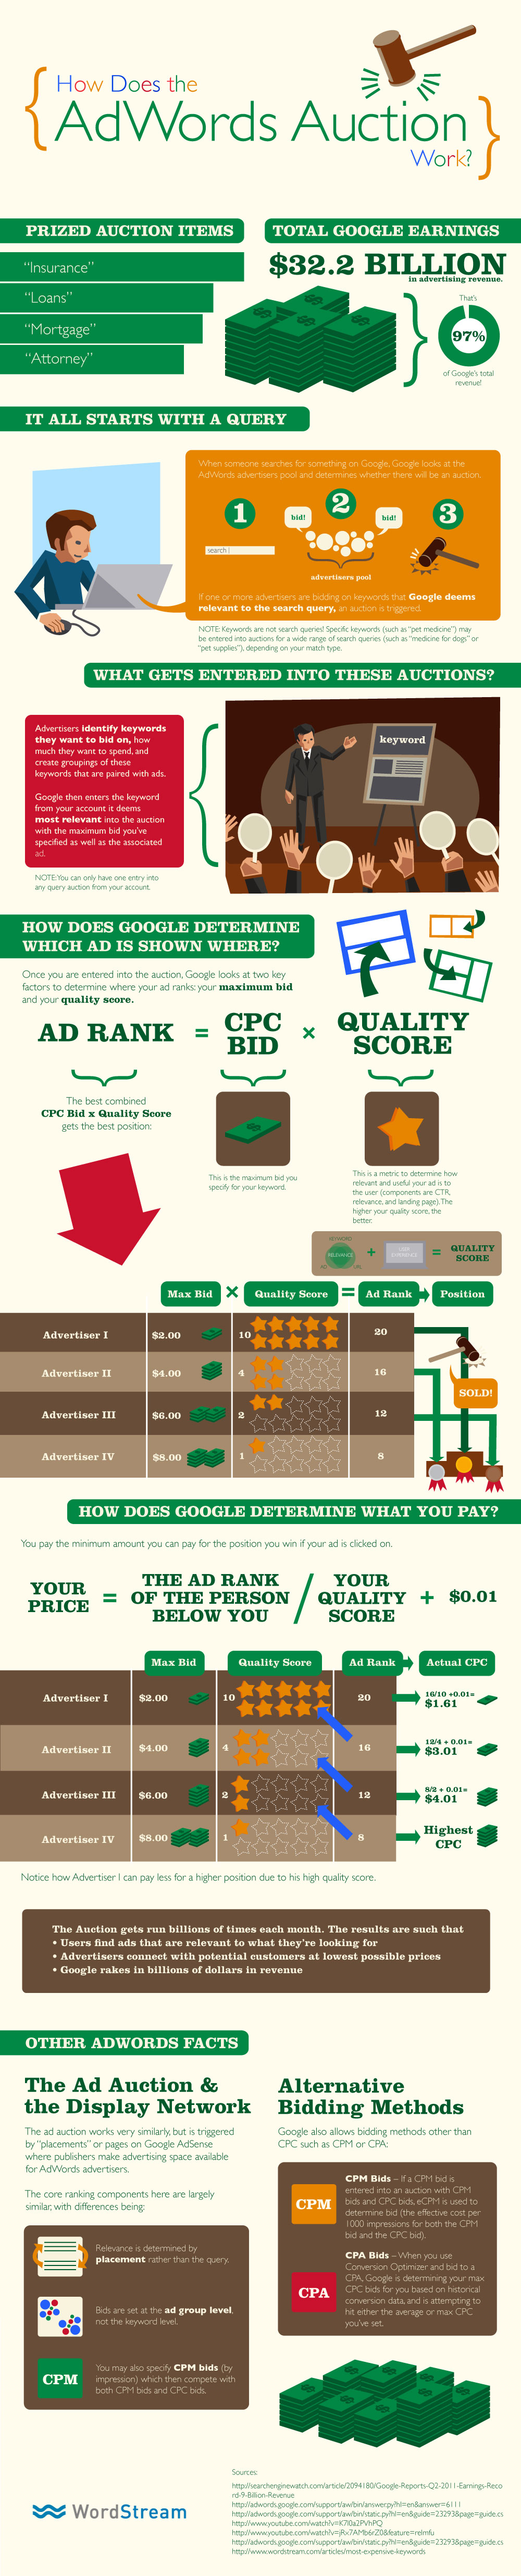 What Is Google AdWords? How the AdWords Auction Works - Infographic from WordStream